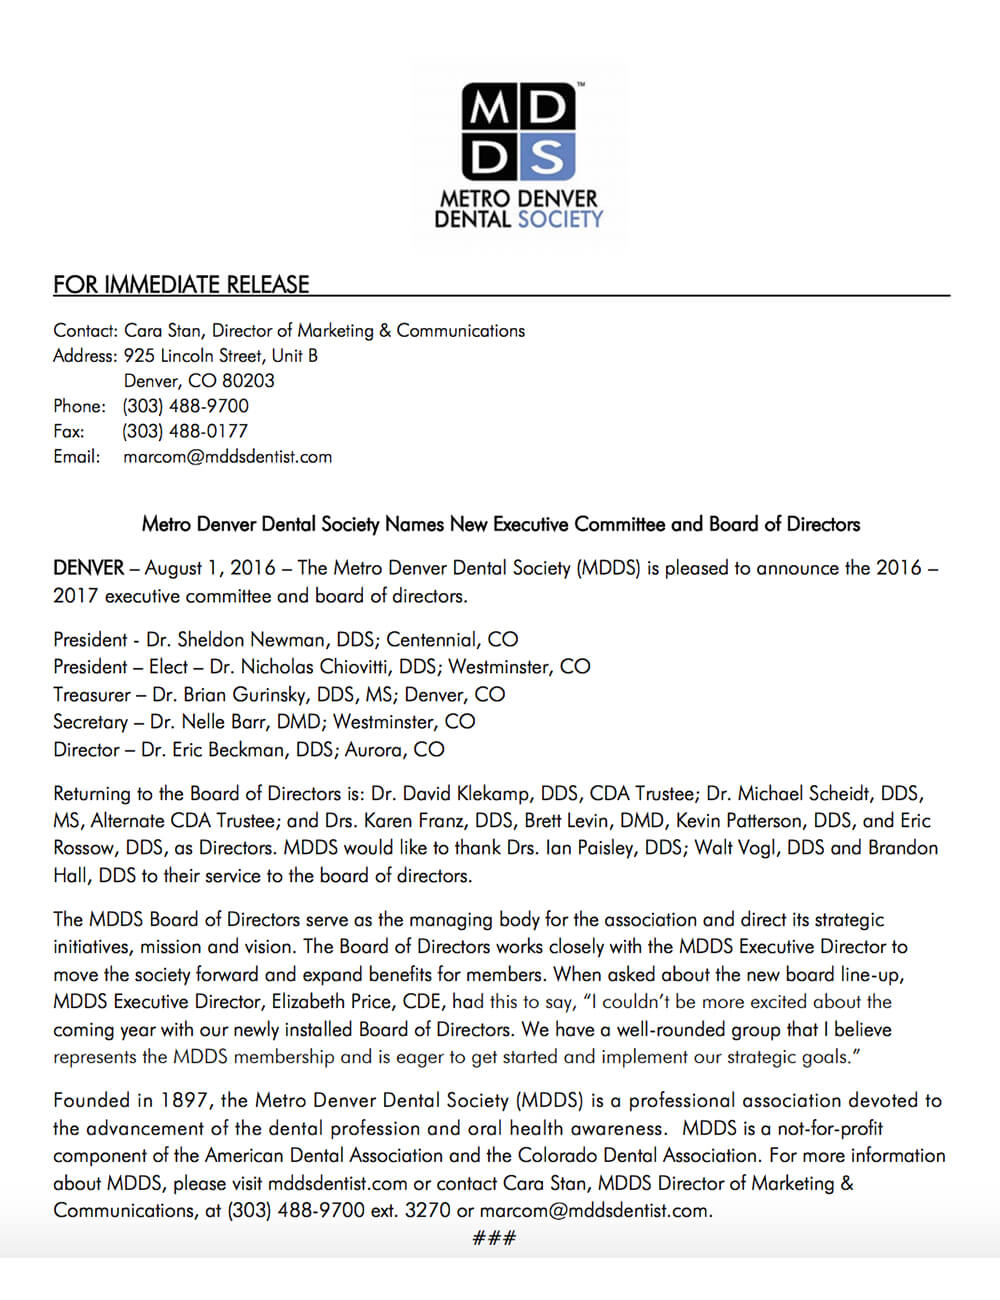 Press Release - Metro Denver Dental Society Names New Executive Committee and Board of Directors